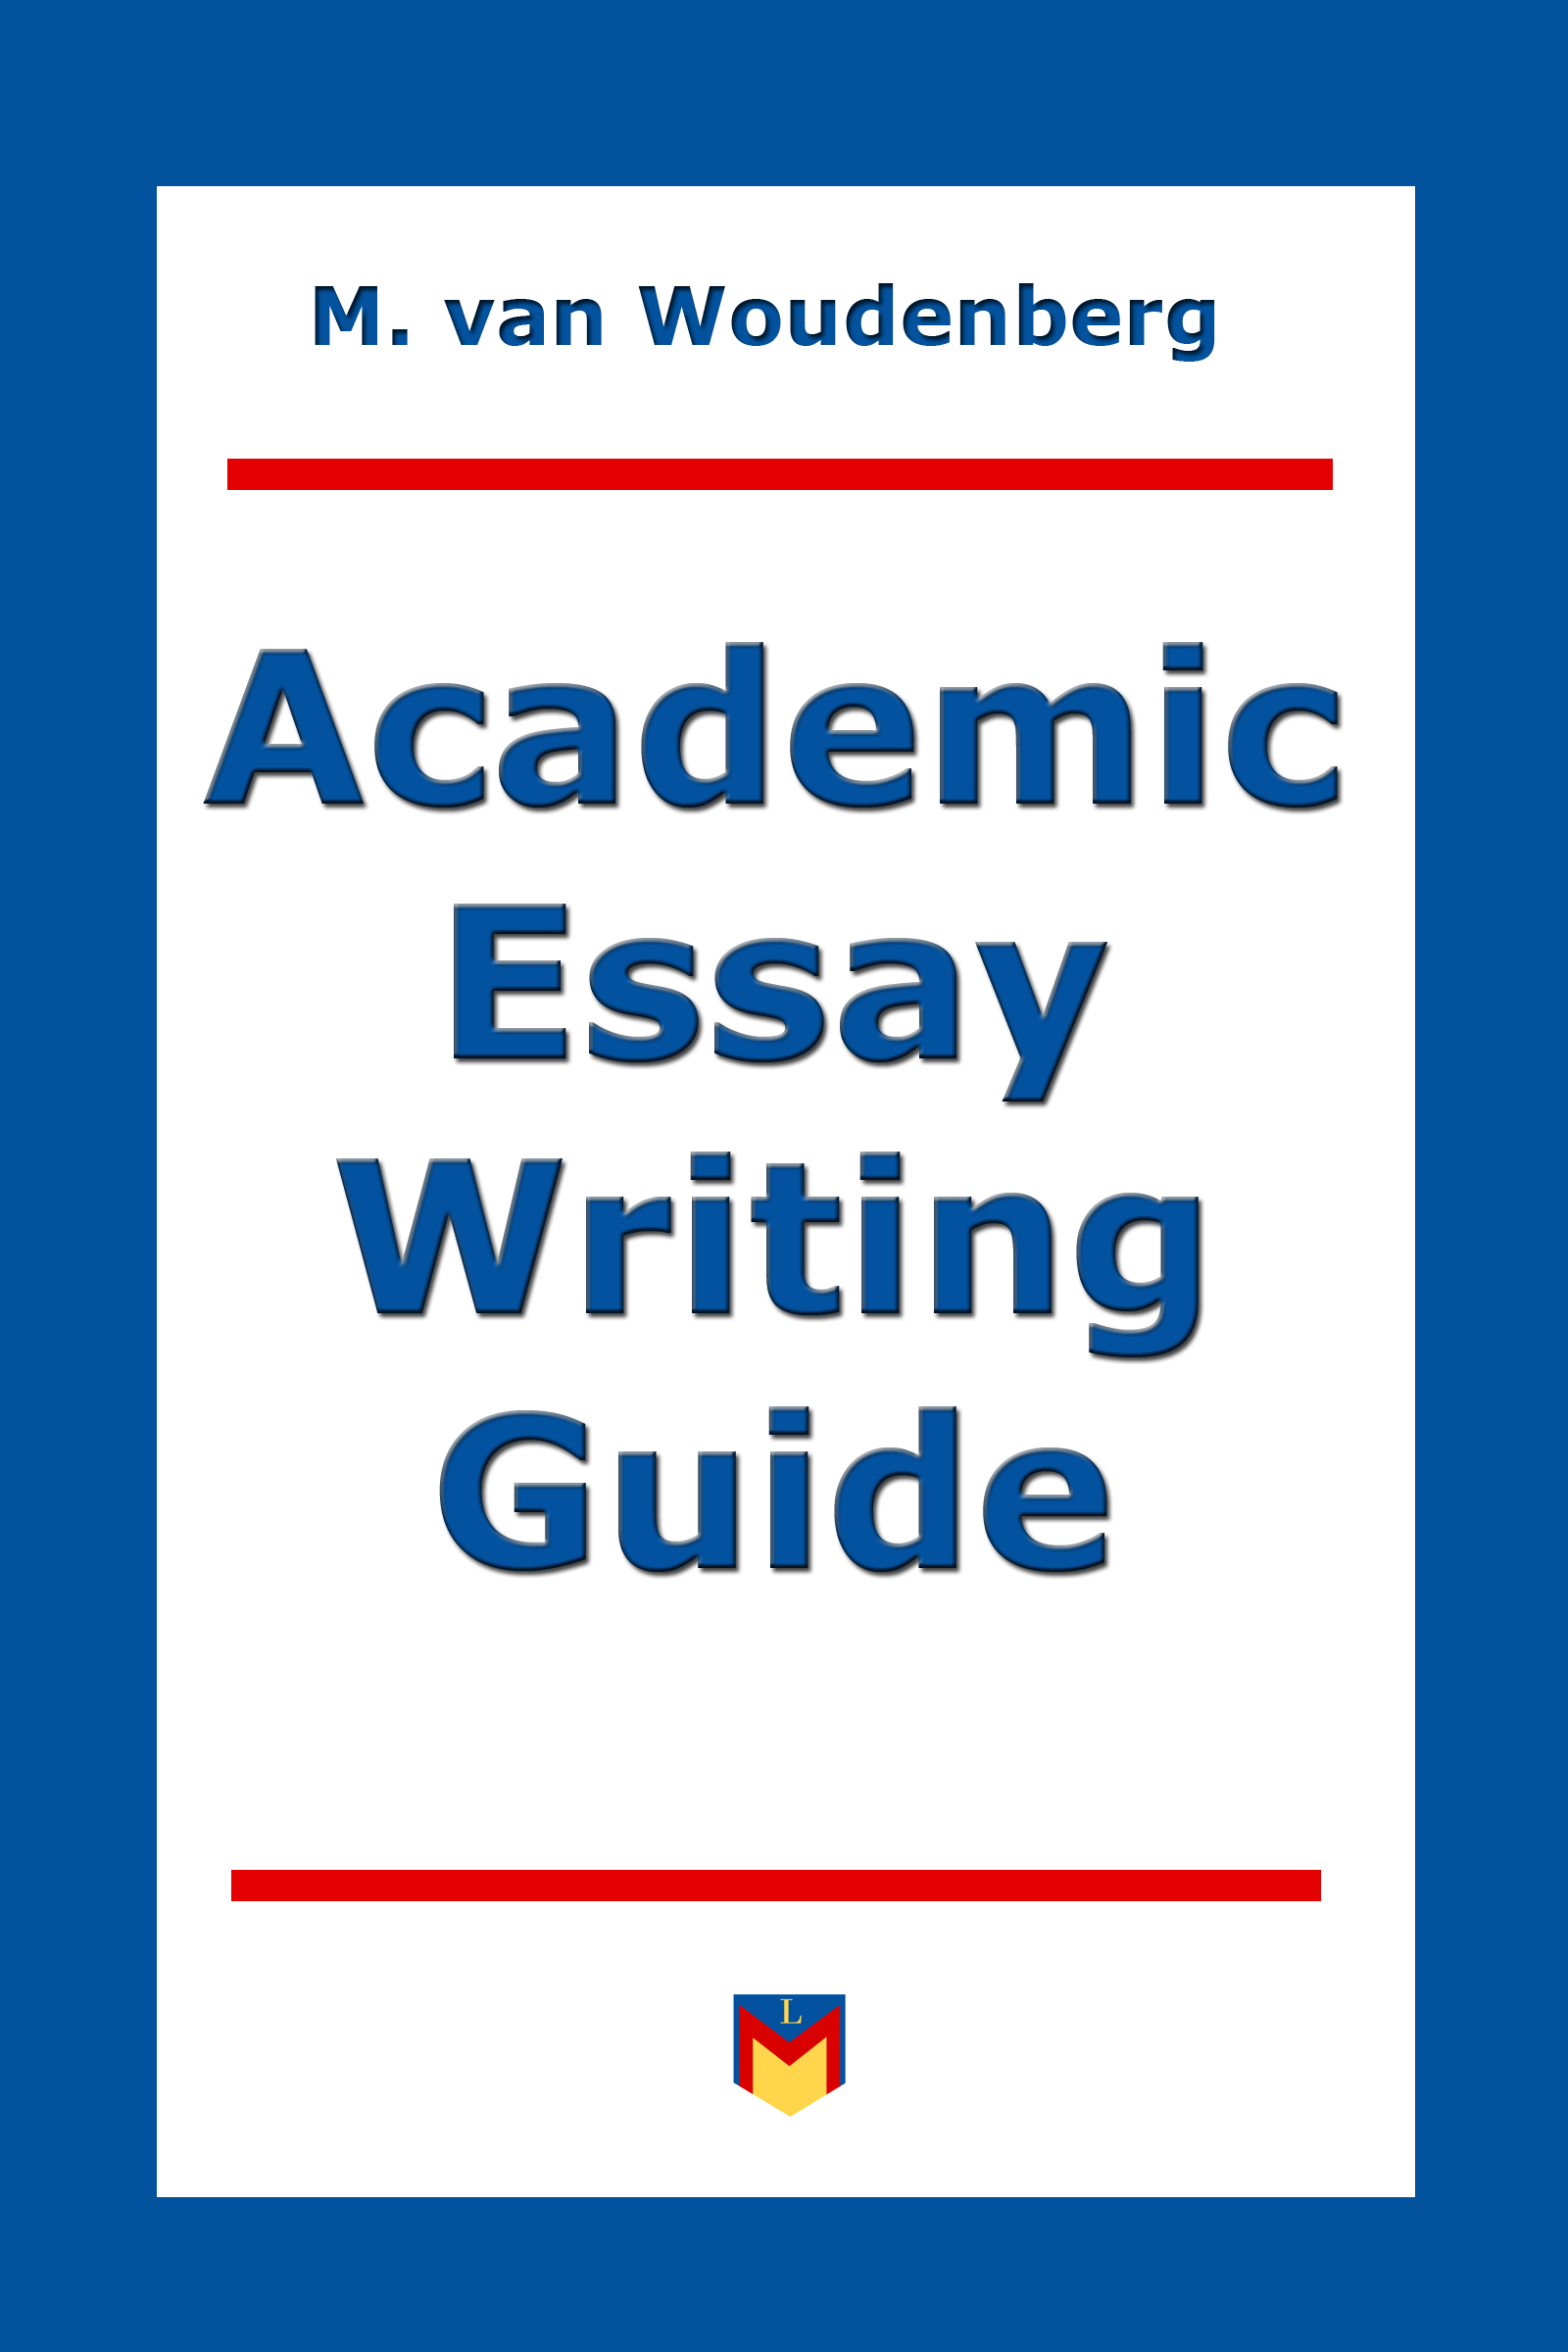 Quality custom essays uk